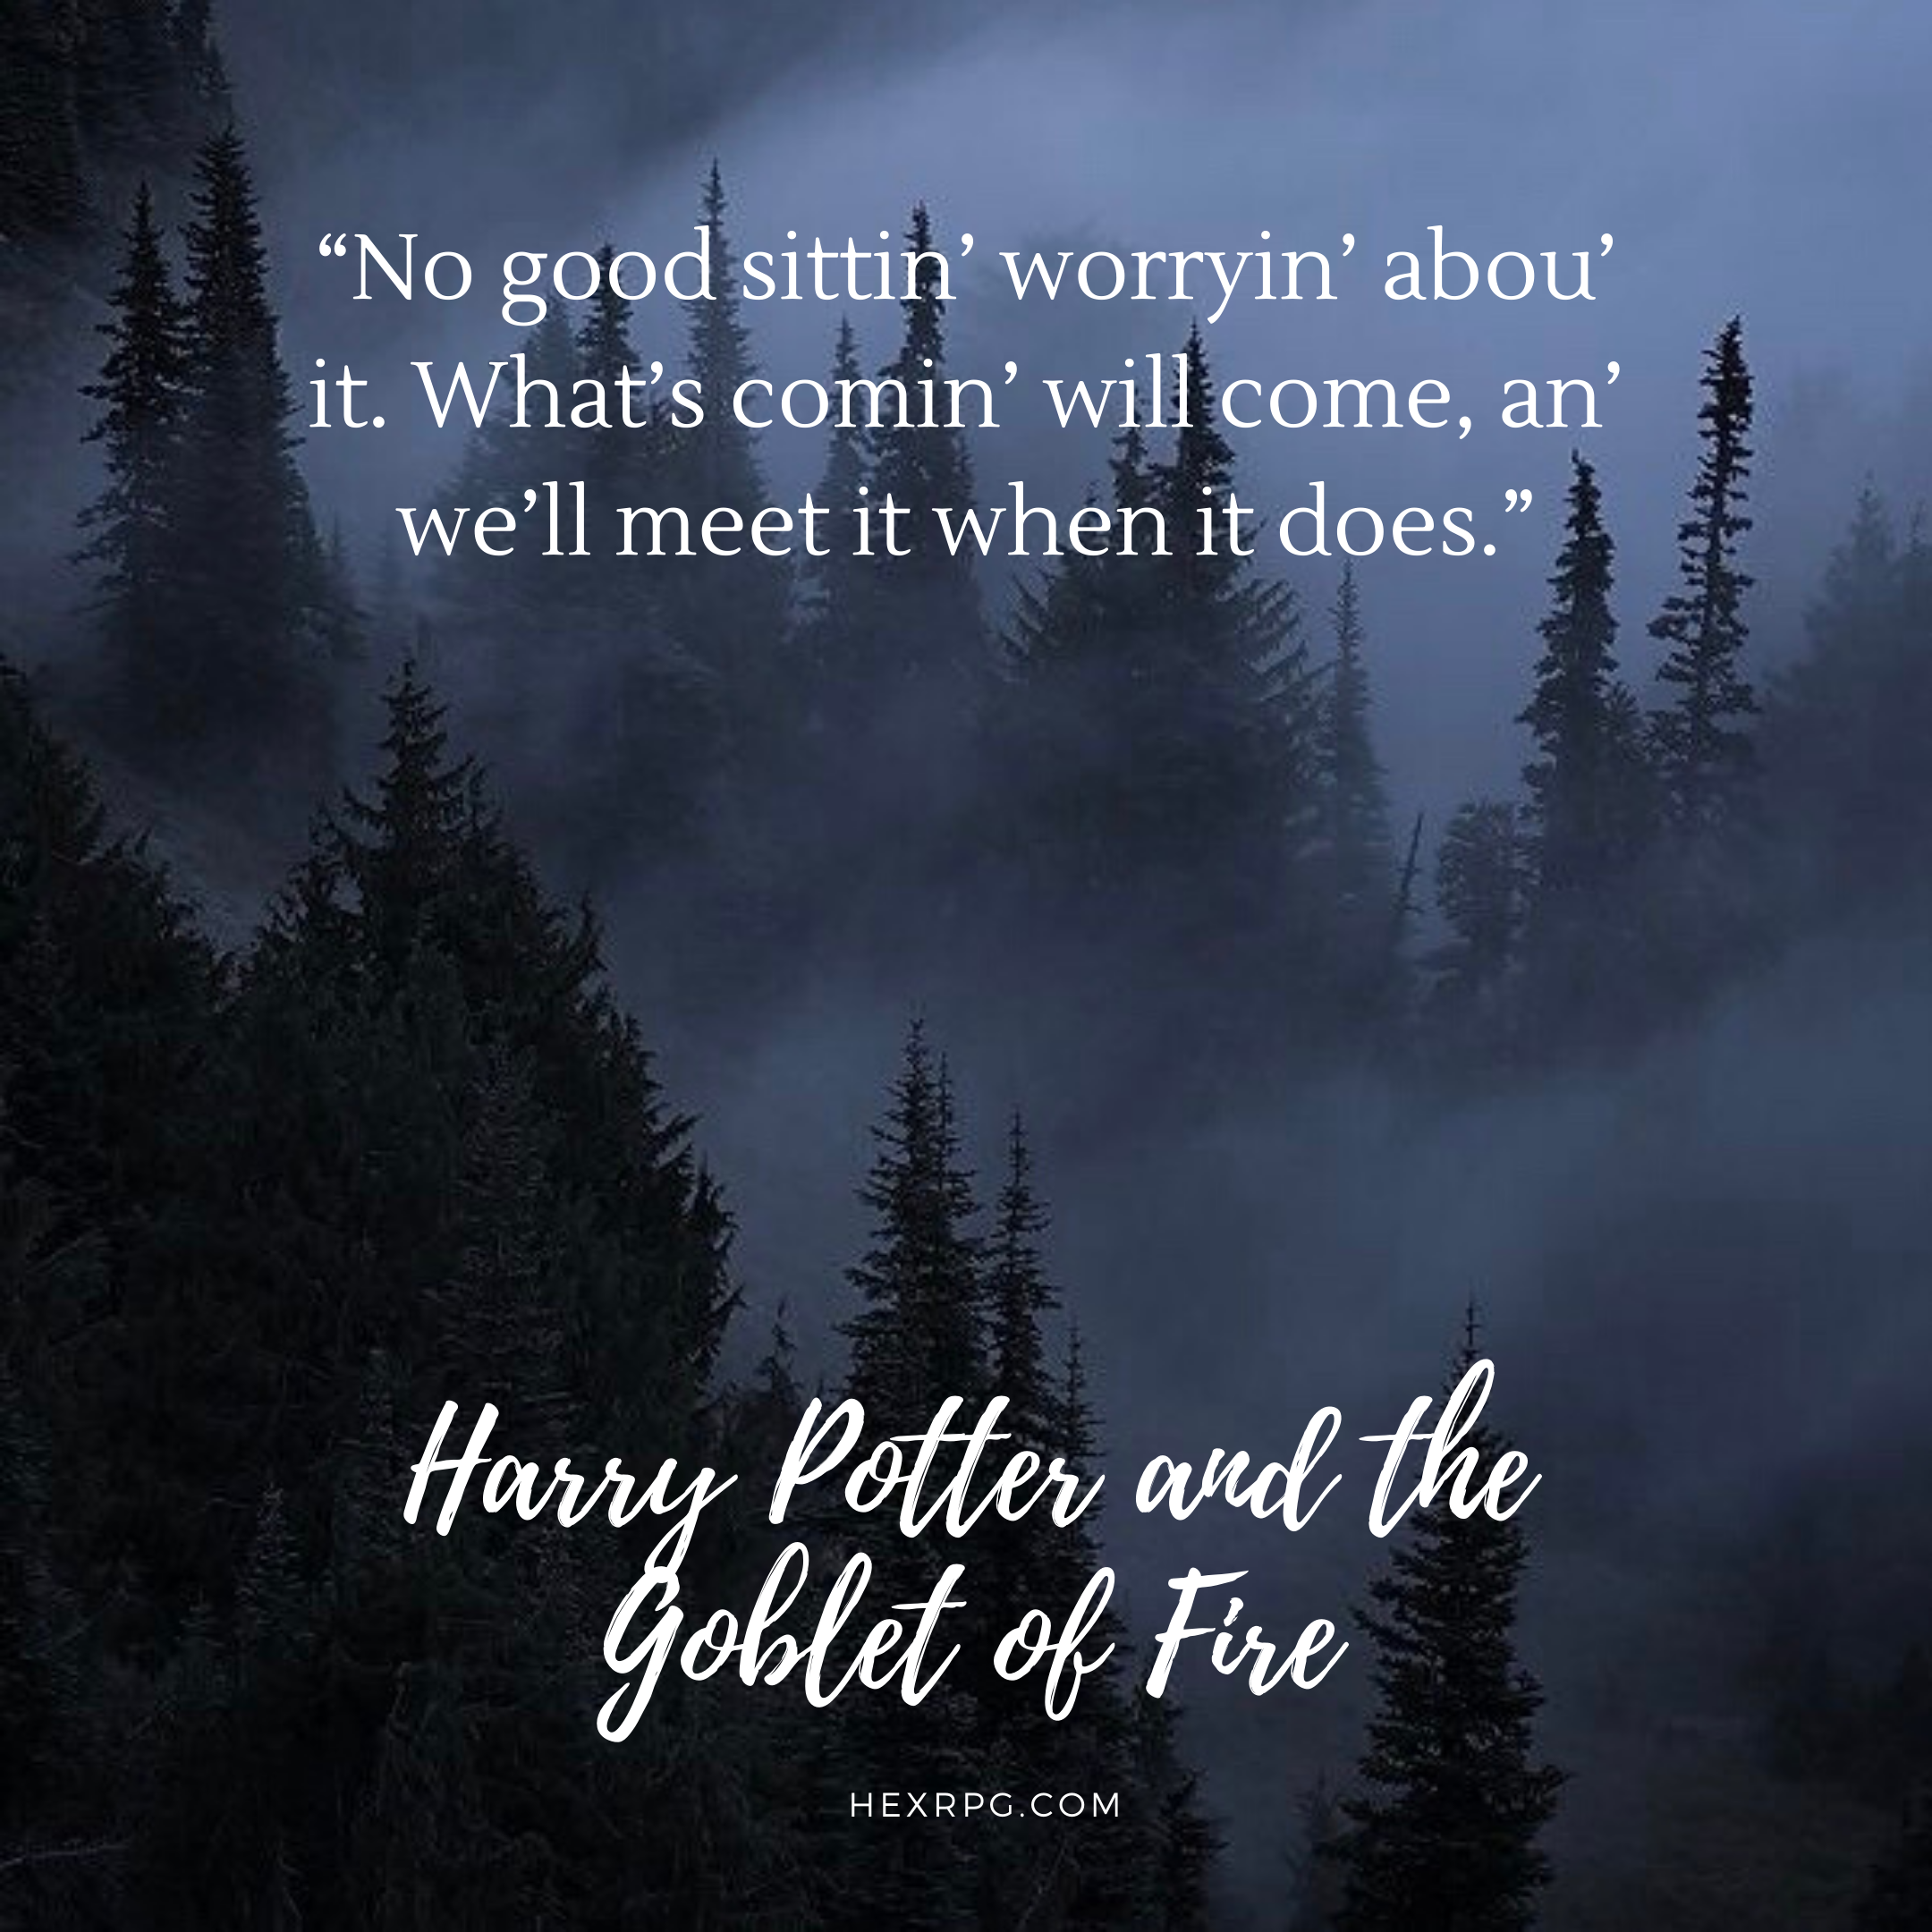 Hogwarts Extreme The Interactive Harry Potter Experience Harry Potter Quotes Hogwarts Extreme Fire Quotes